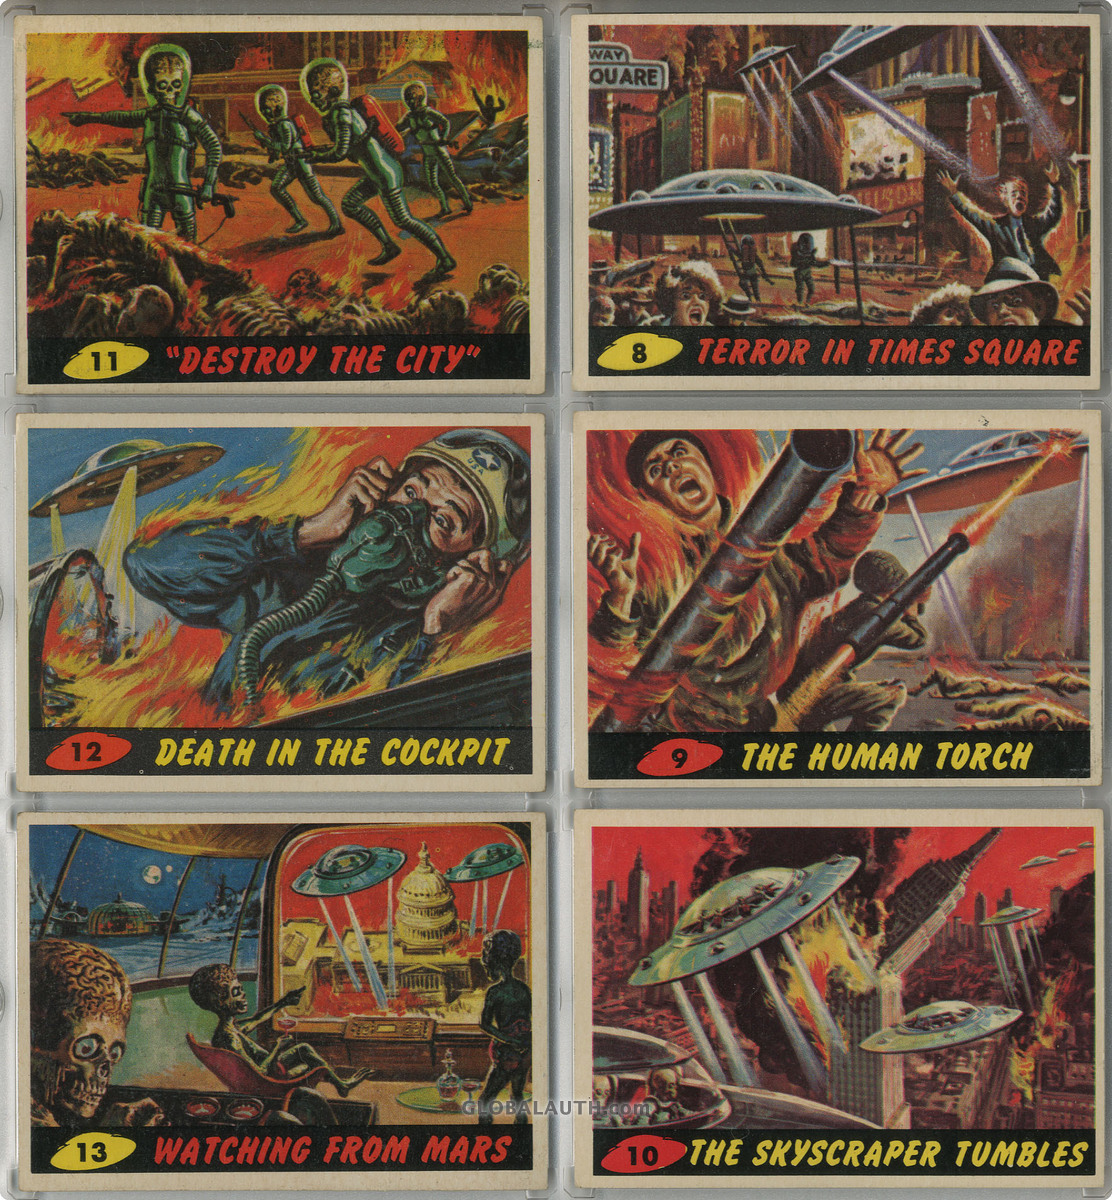 1962-mars-attacks-non-sports-card-set-set-images.jpg, #2